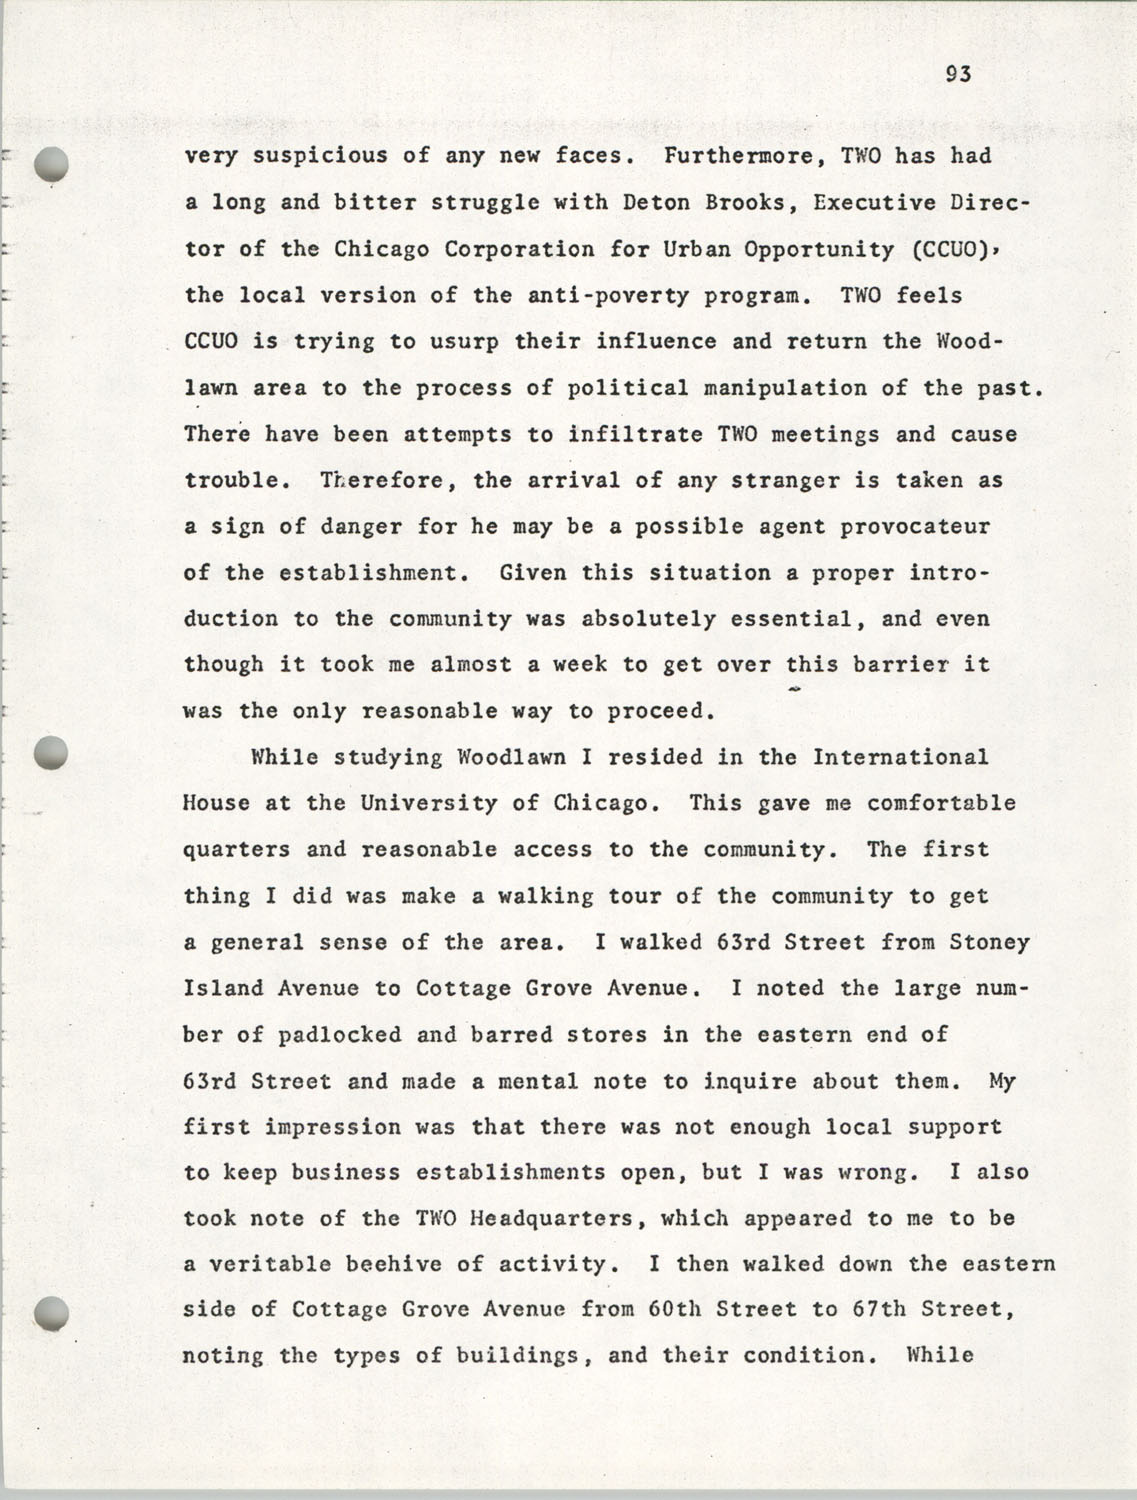 Citizen Participation. Democracy and Social Change, December 1, 1969, Page 93